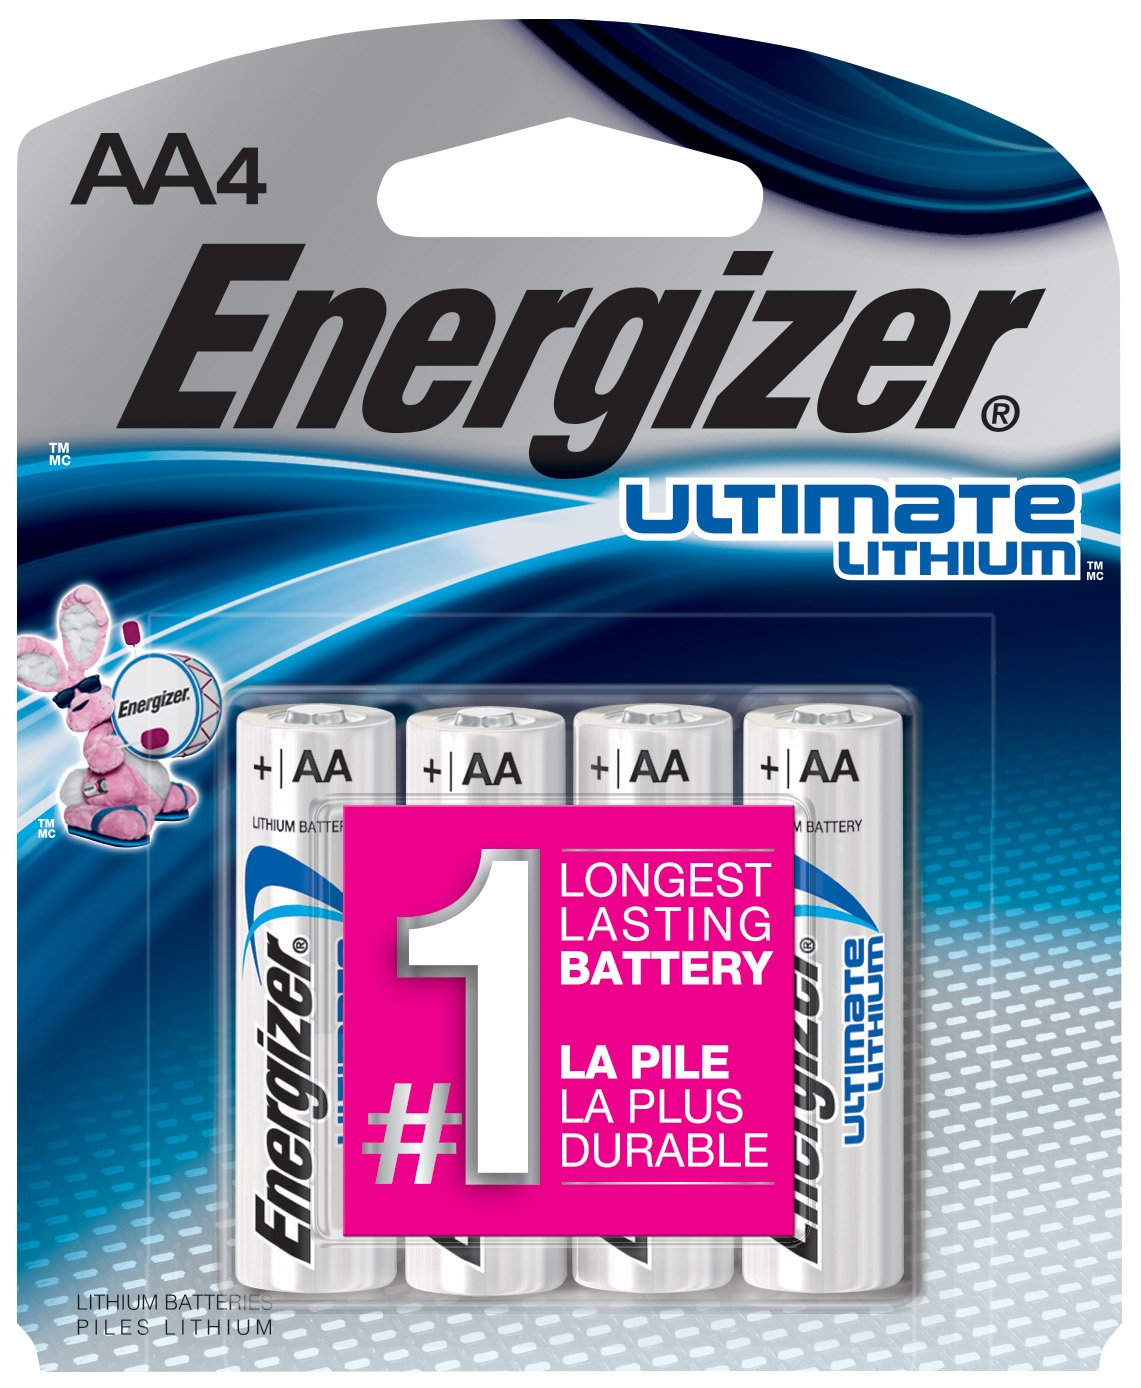 Amazon.com: Energizer Ultimate Lithium AAA Batteries, 8